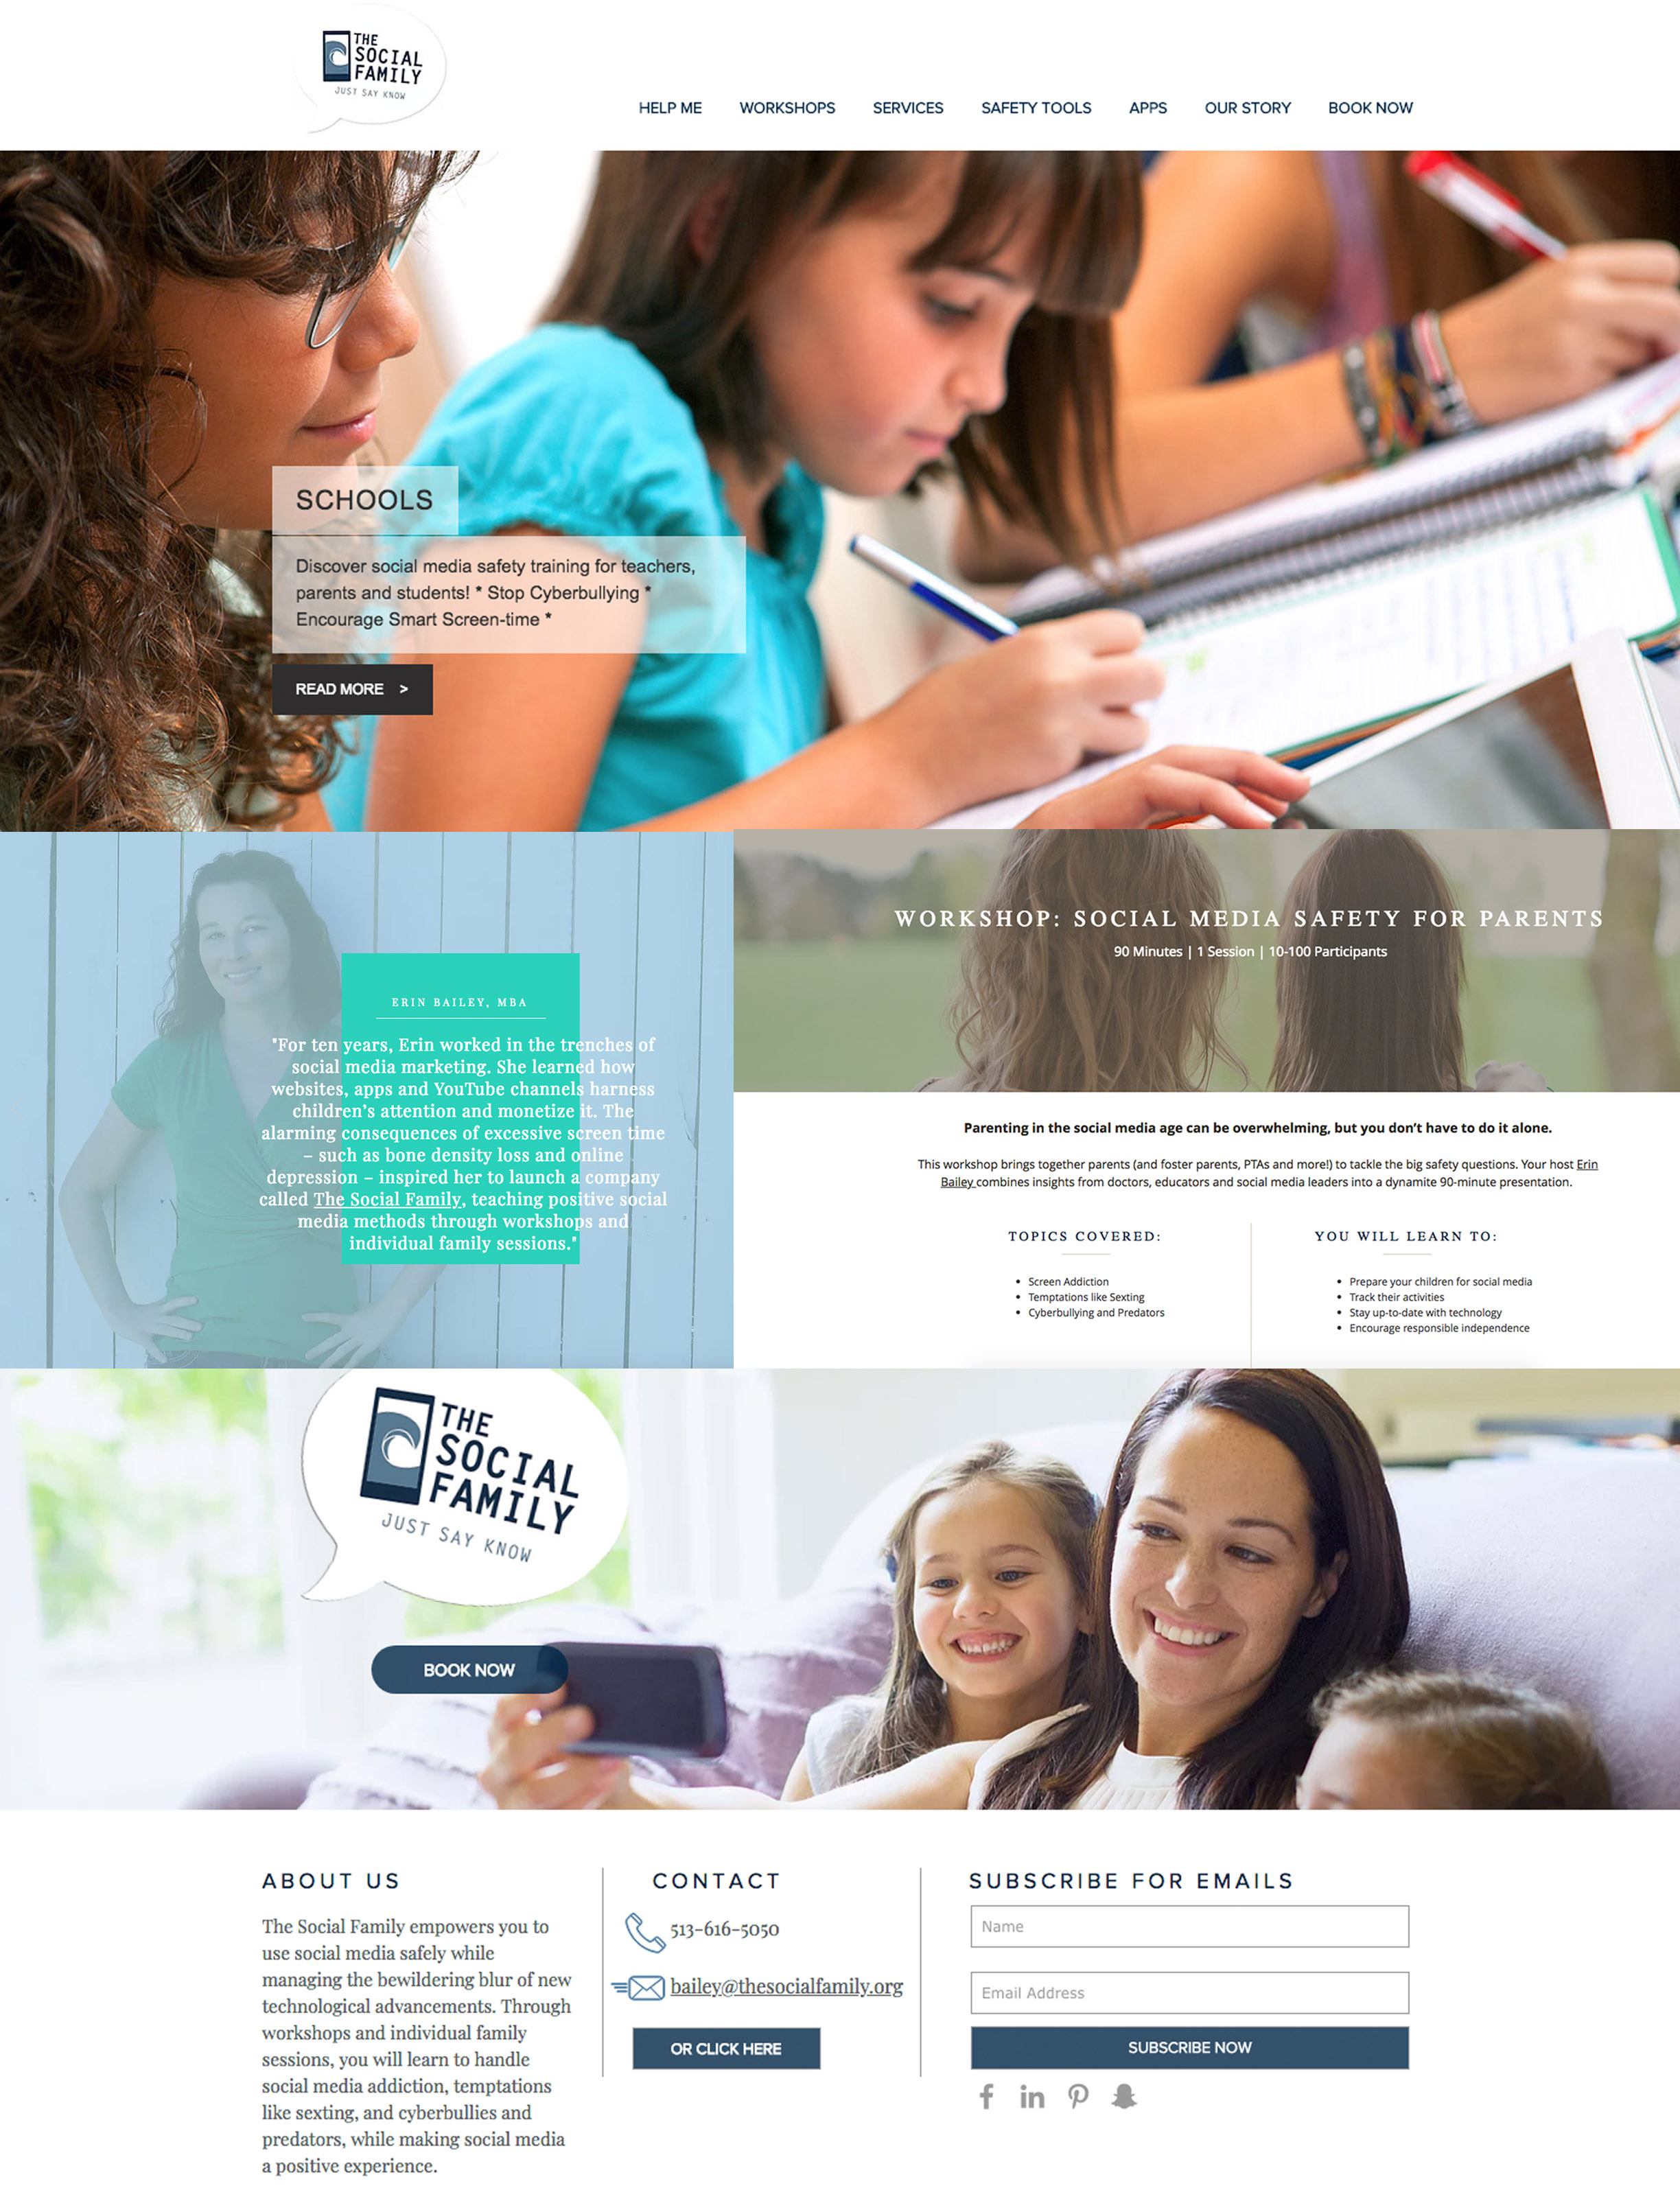 Client: The Social Family - Web-designer, responsible for the re-design and re-launch of the social media safety and awareness company's website.